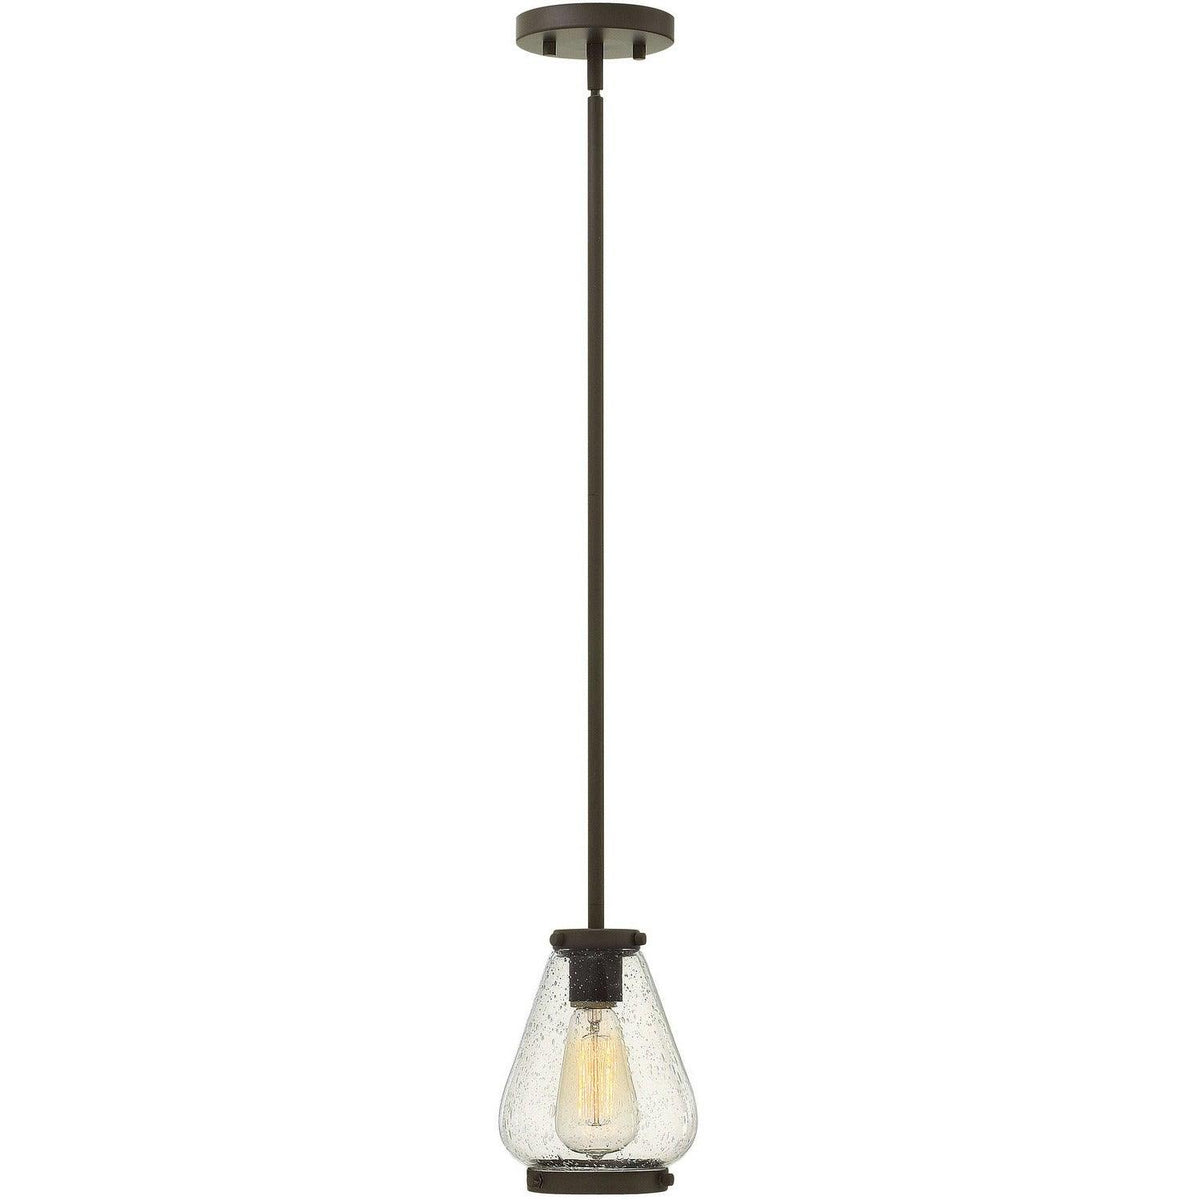 Hinkley Canada - 3687OZ - One Light Pendant - Finley - Oil Rubbed Bronze